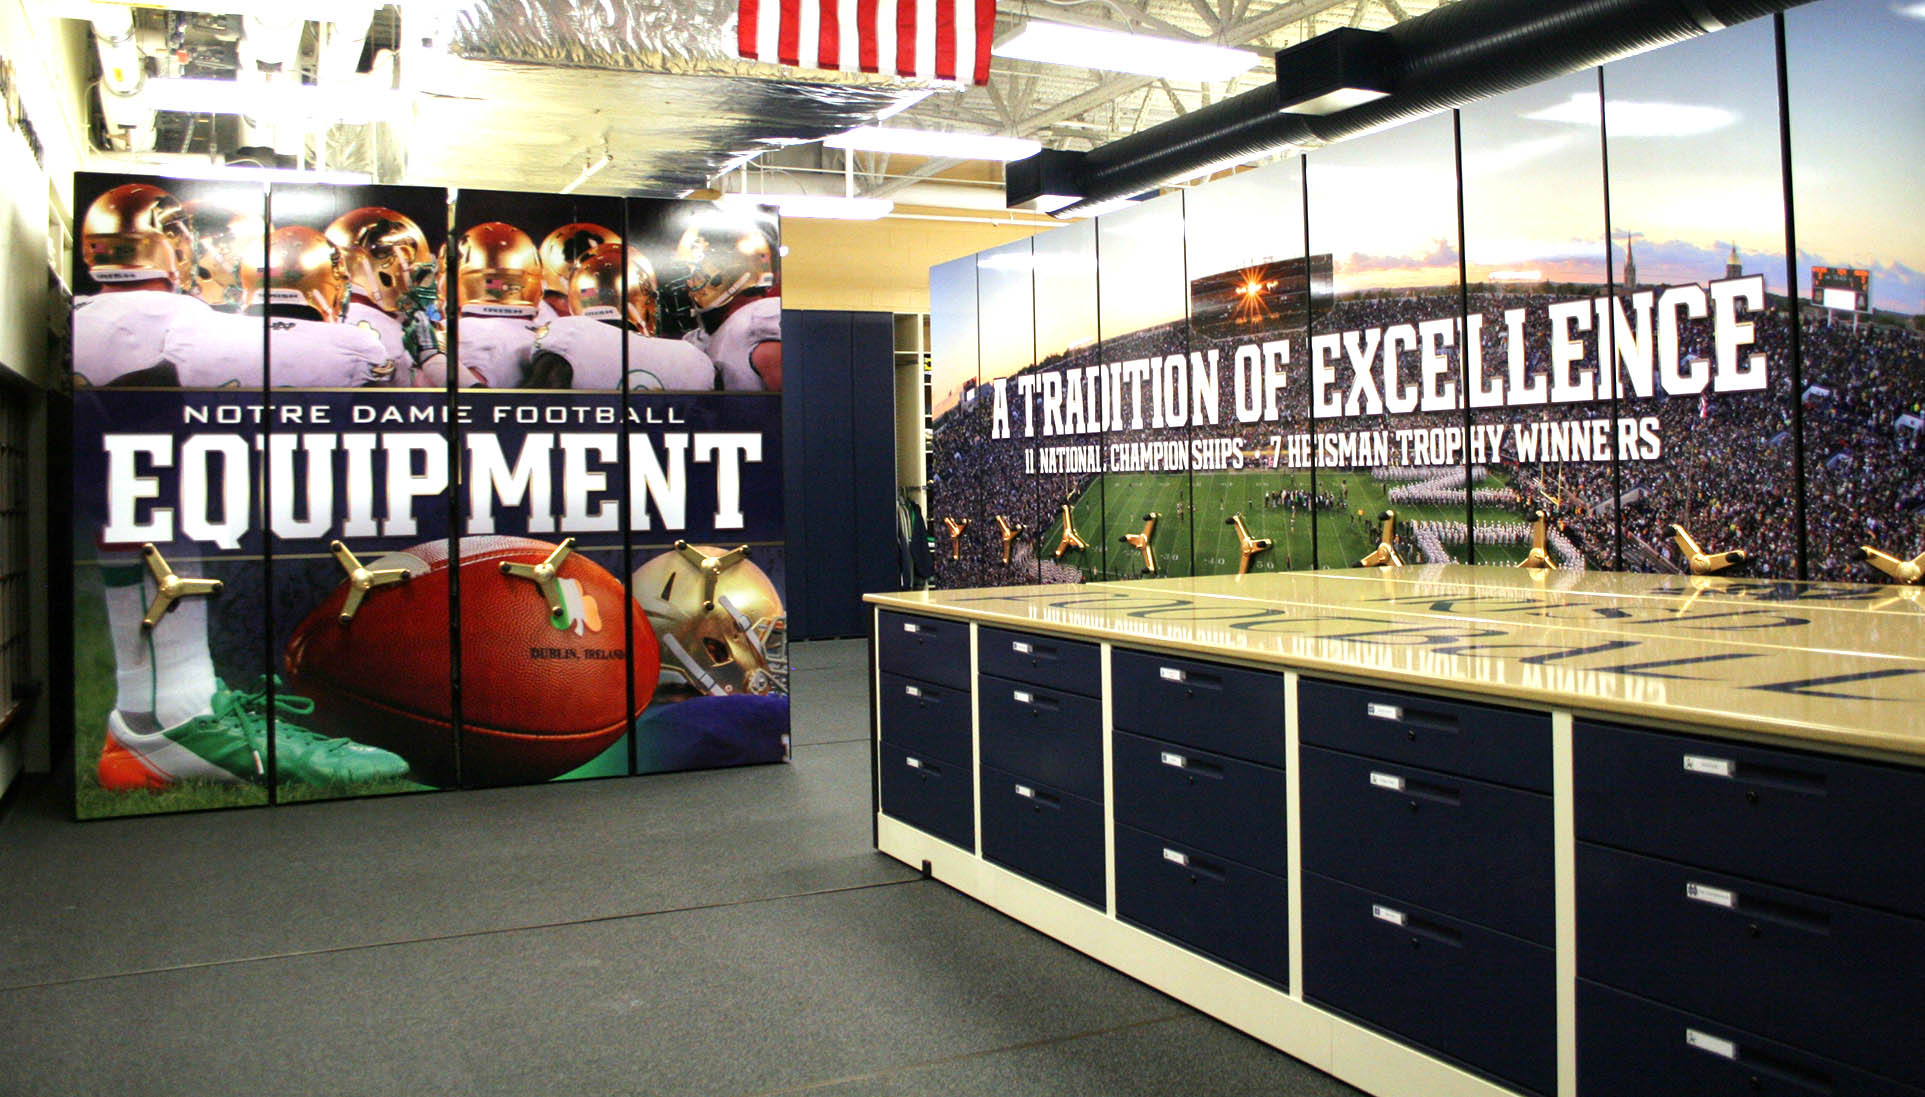 Compact Shelving For Football Team Storage At Notre Dame